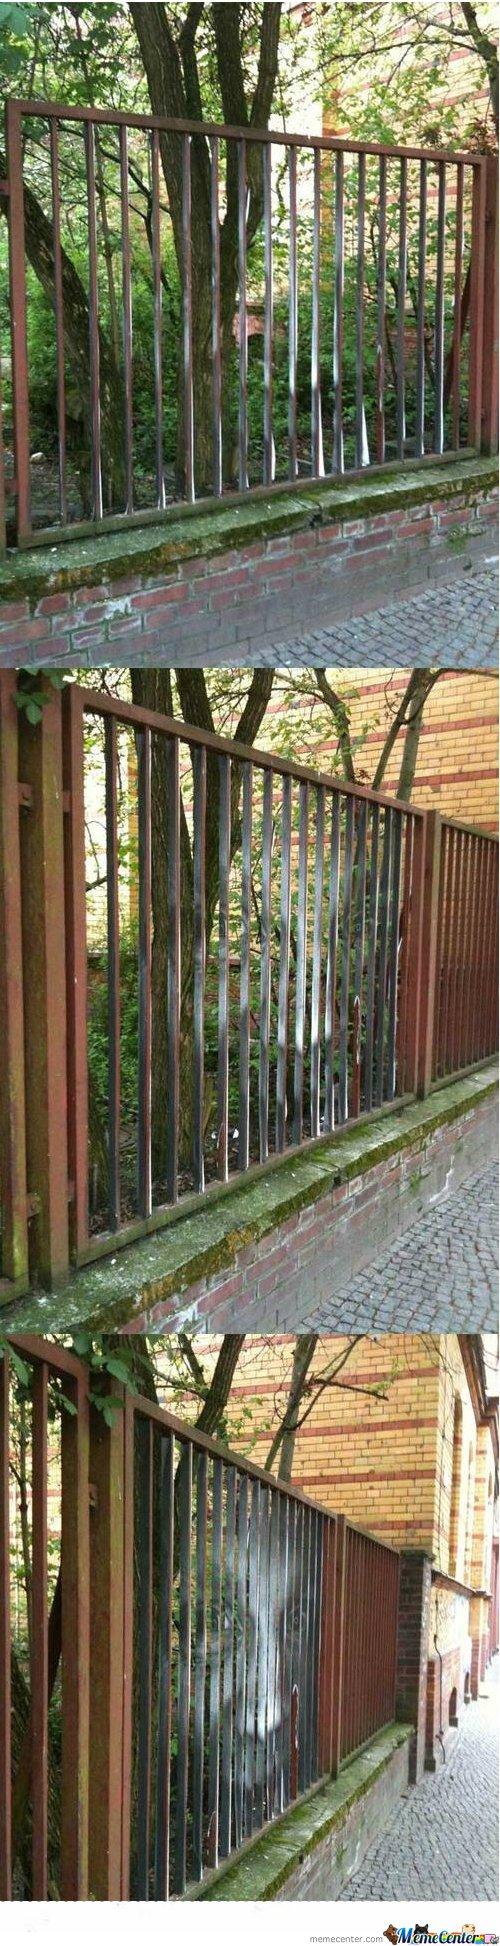 Just A Fence...Wait...OMG